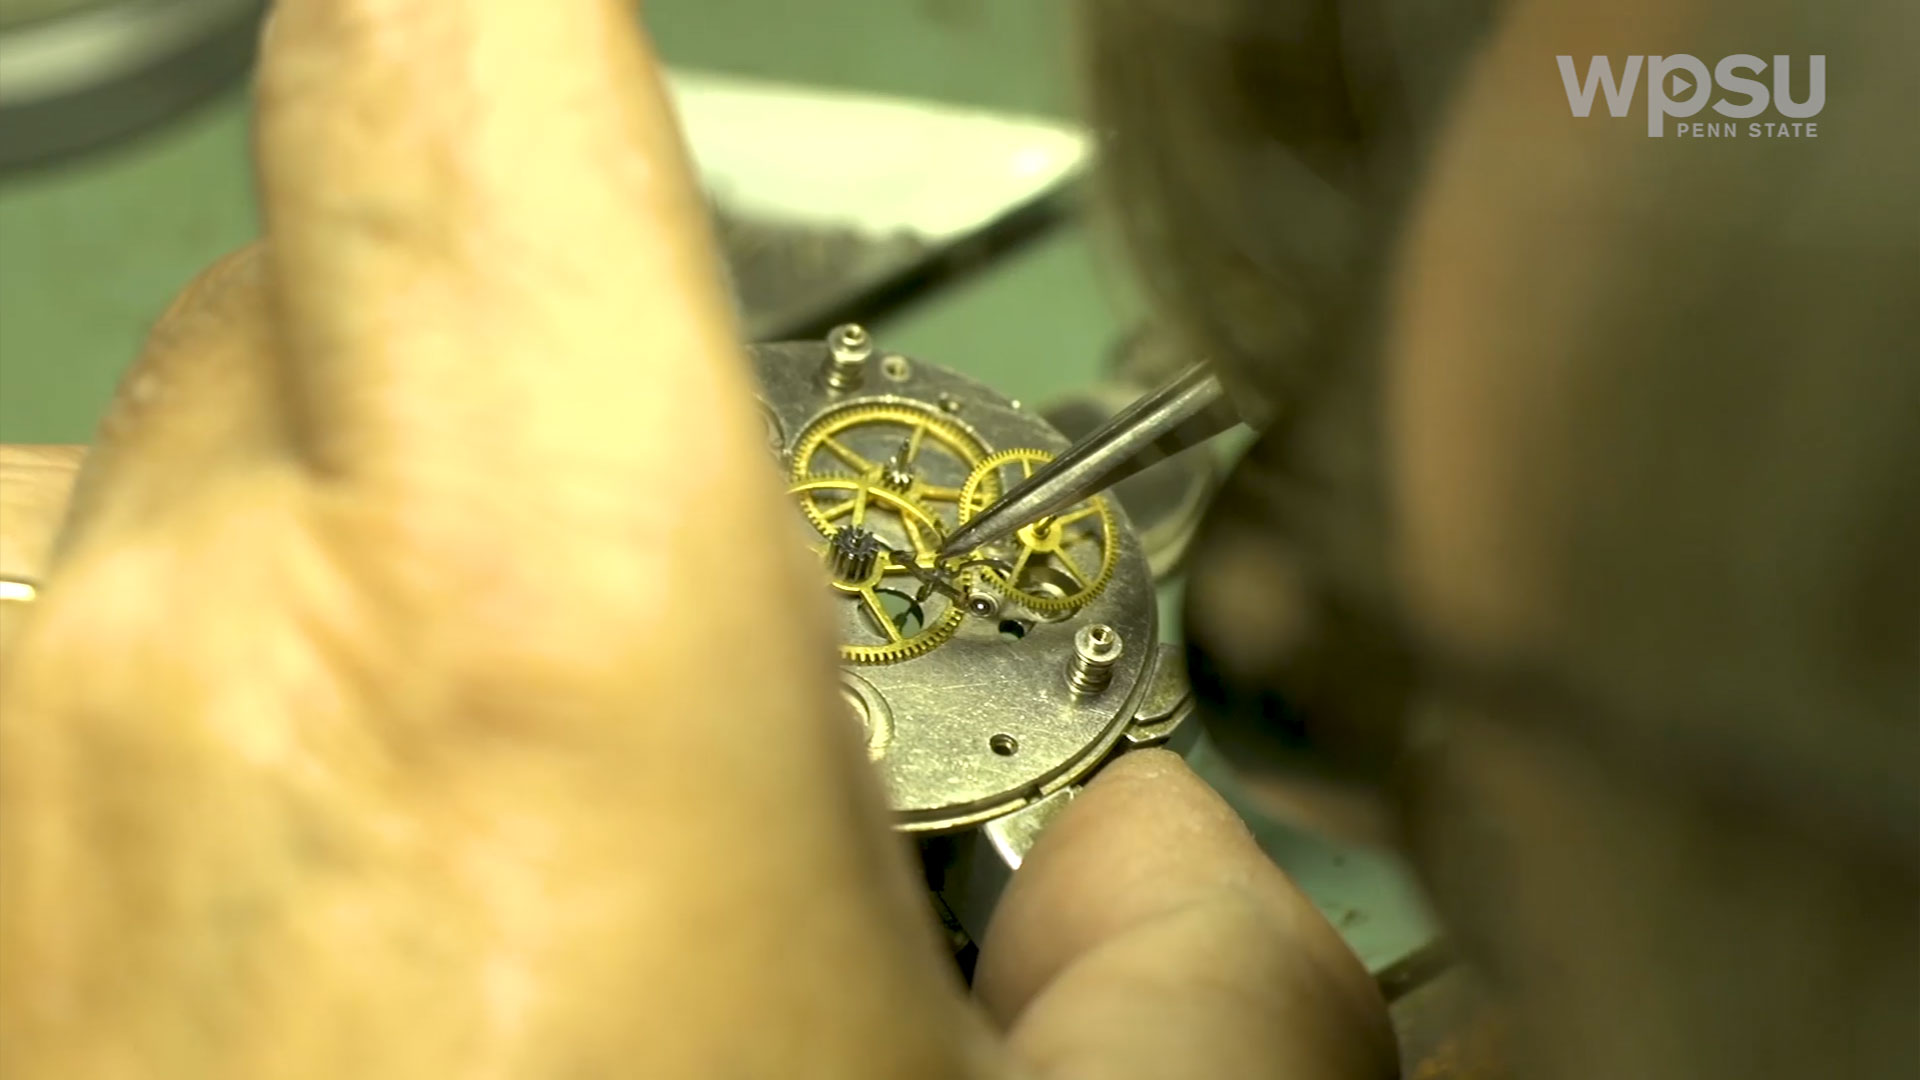 close up of gears of pocket watch